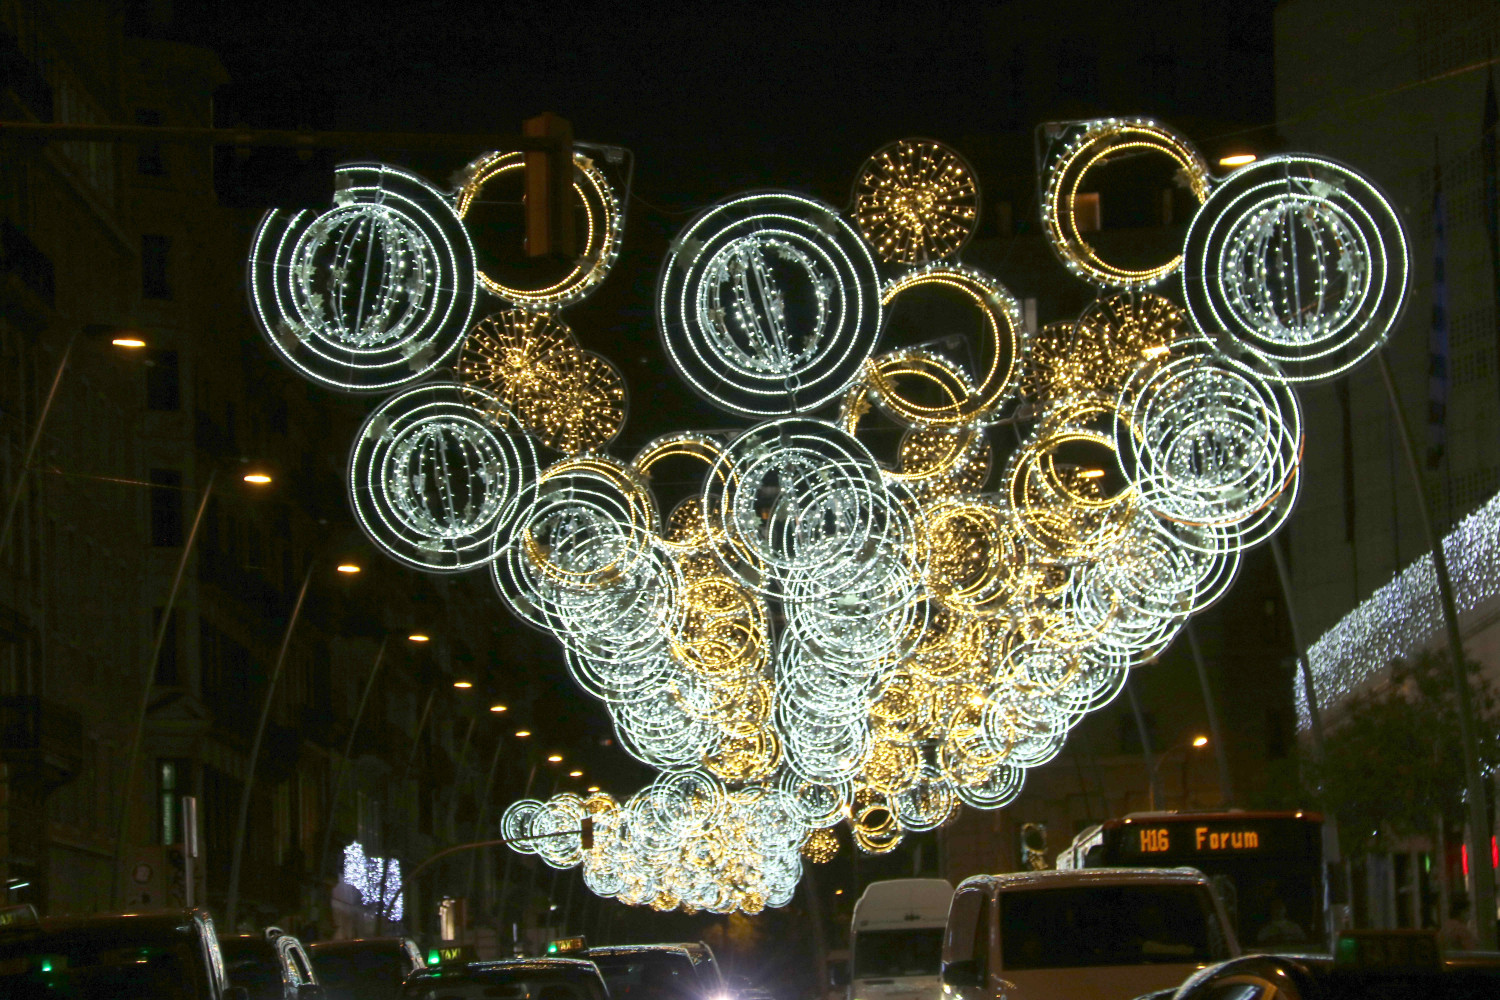 Christmas lights in Carrer de Pelai, Barcelona, 2020 (by Cillian Shields)